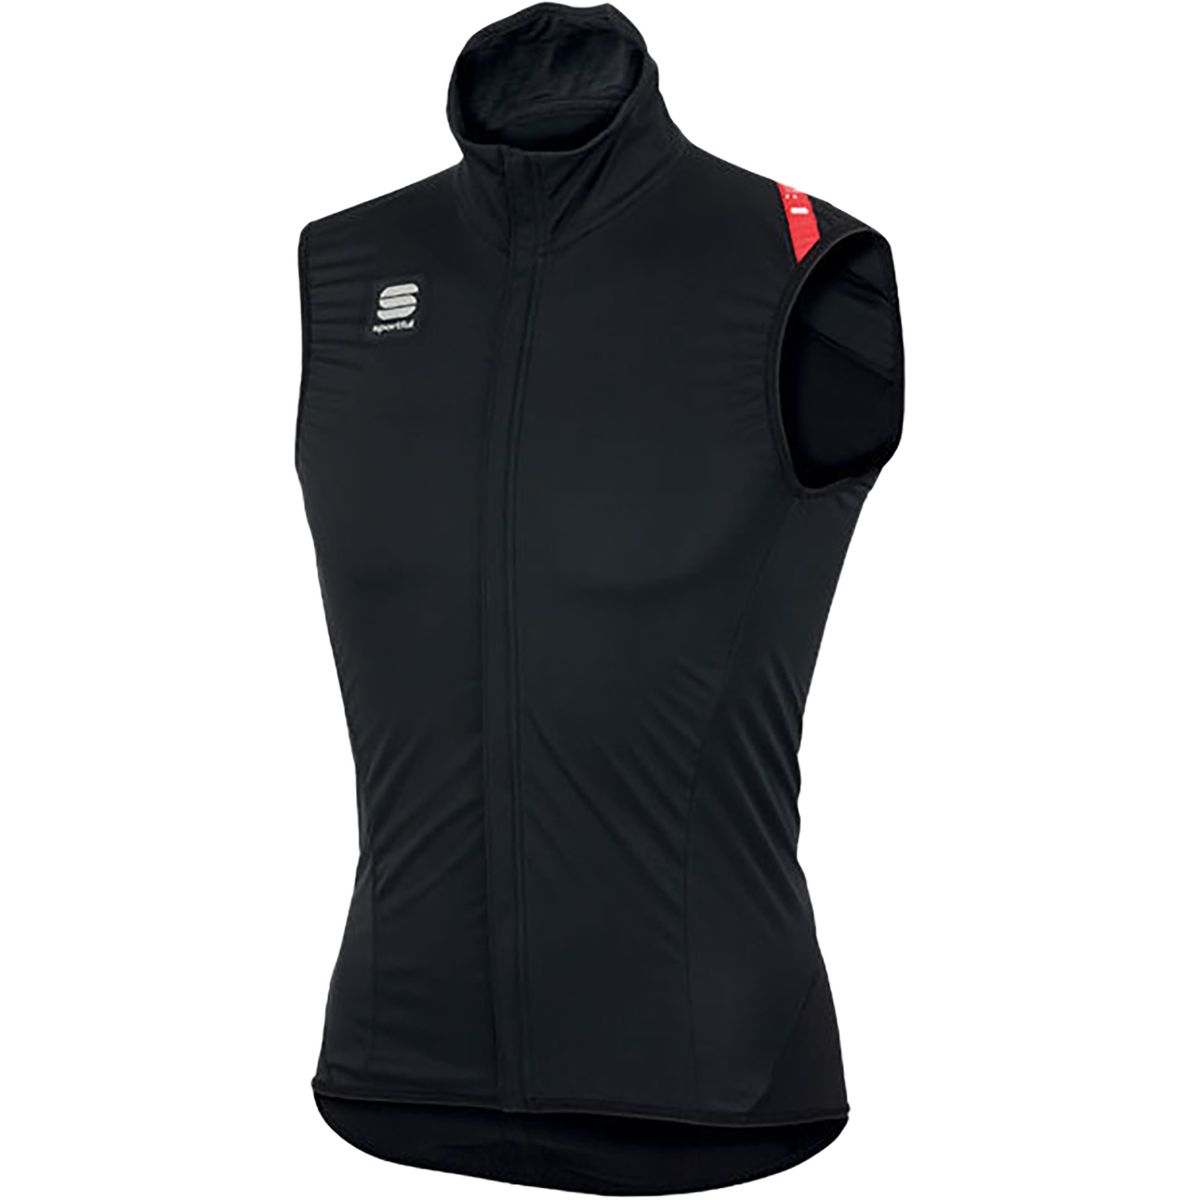 Sportful Fiandre Light No Rain Vest Men's